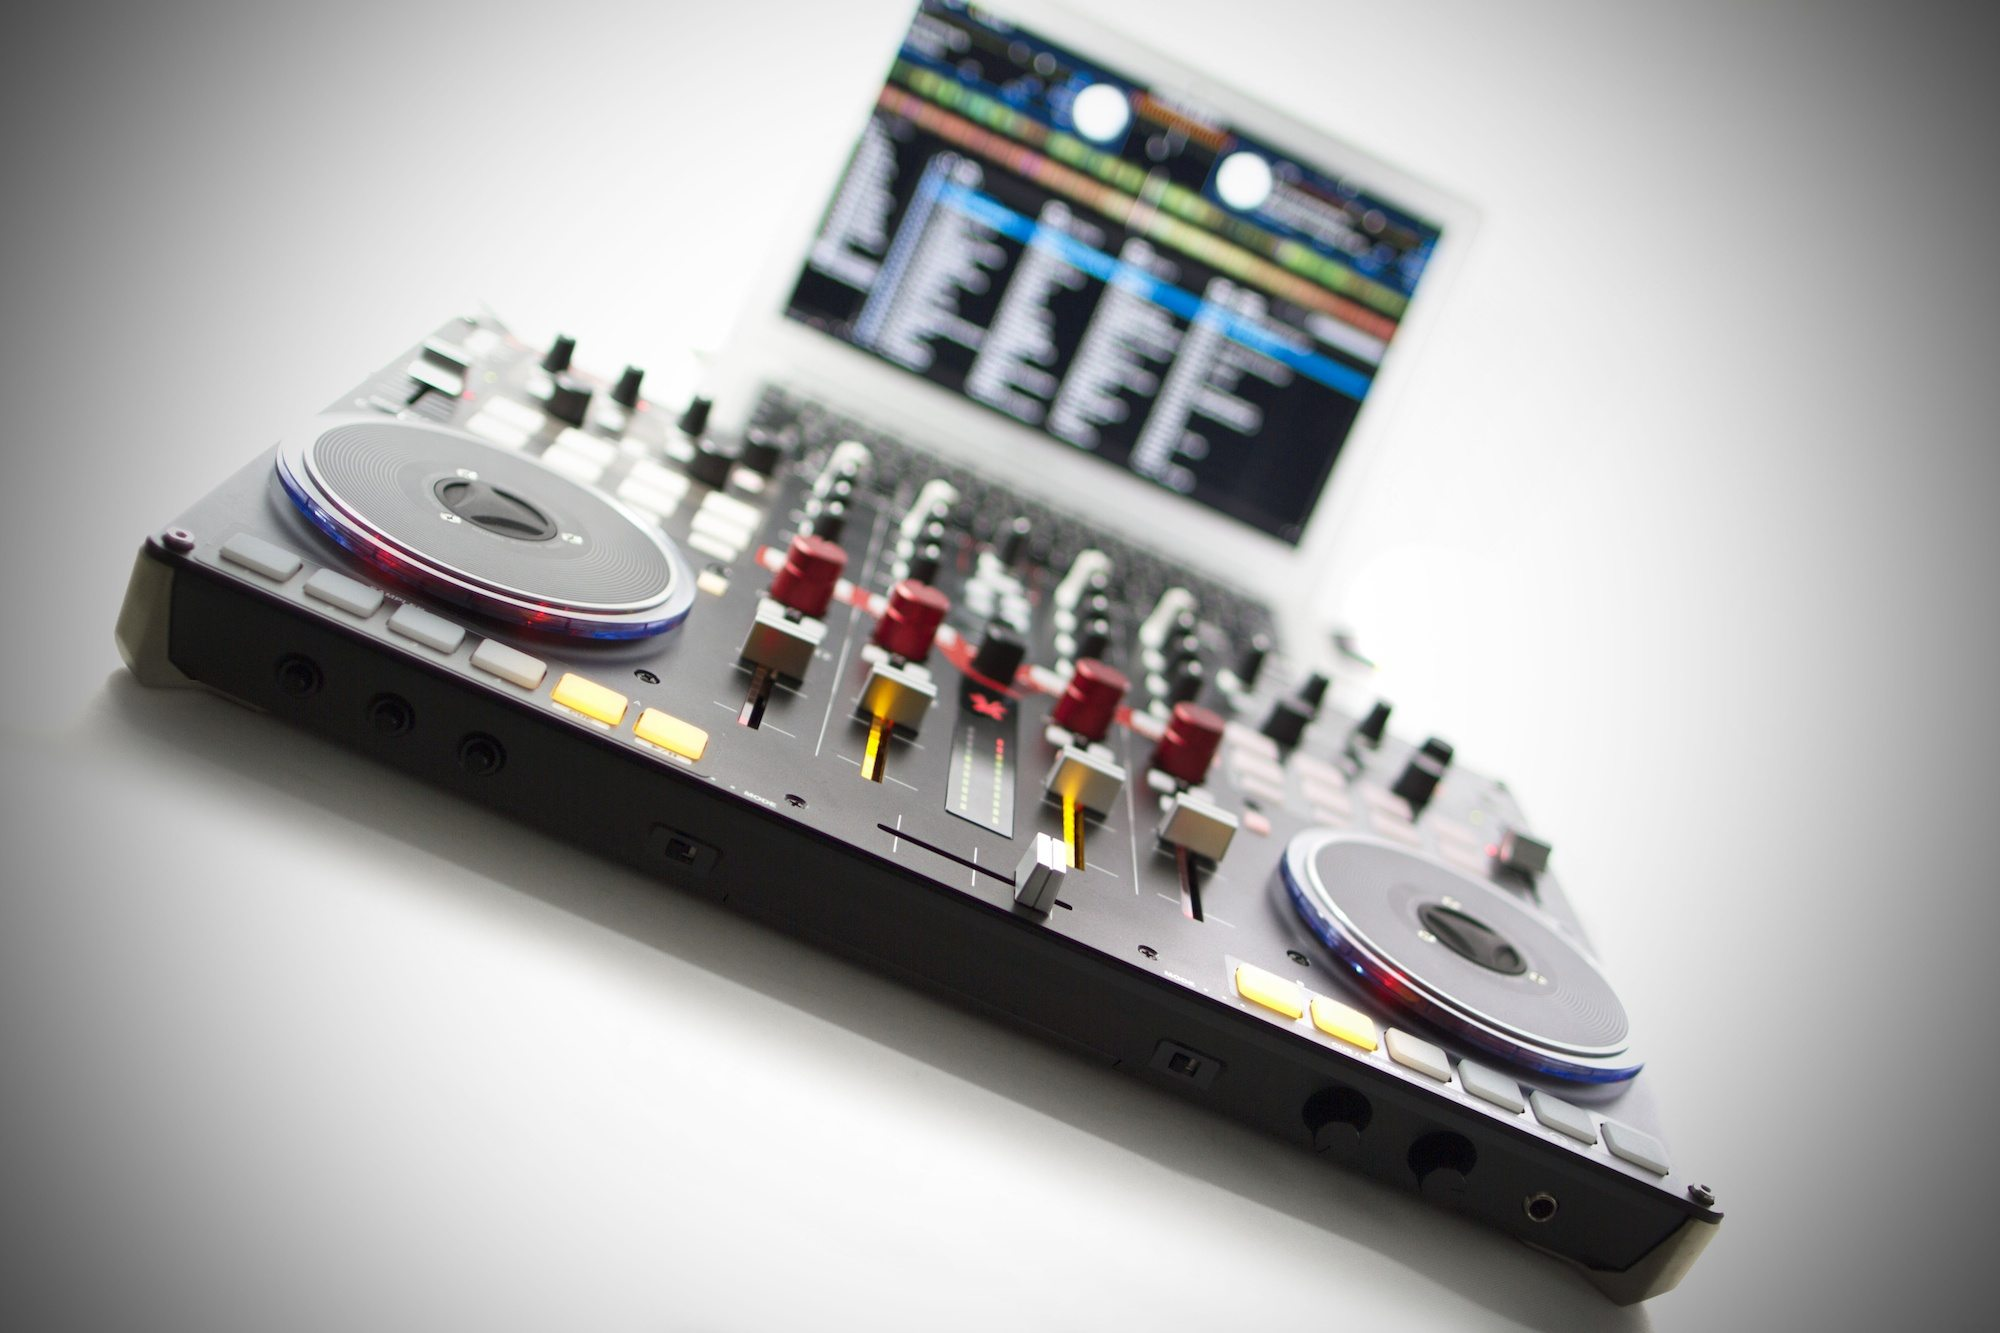 Review Vestax Vci 400 Controller Part 2 Djworx Virtualdj Wiring Diagram In A Nutshell